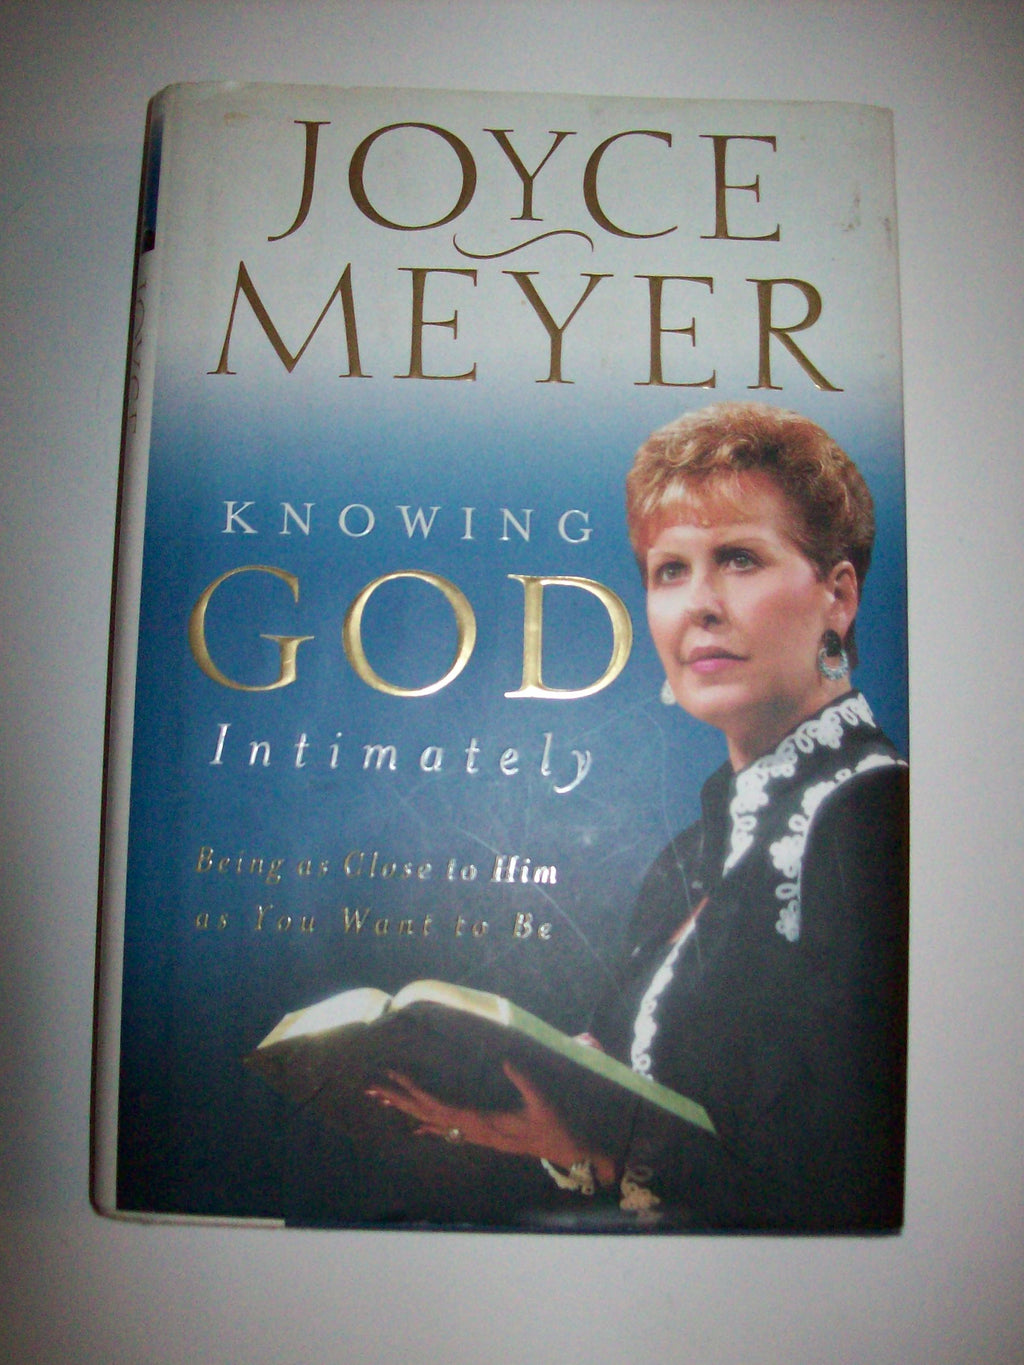 Knowing God Intimately By Joyce Meyer - We Got Character